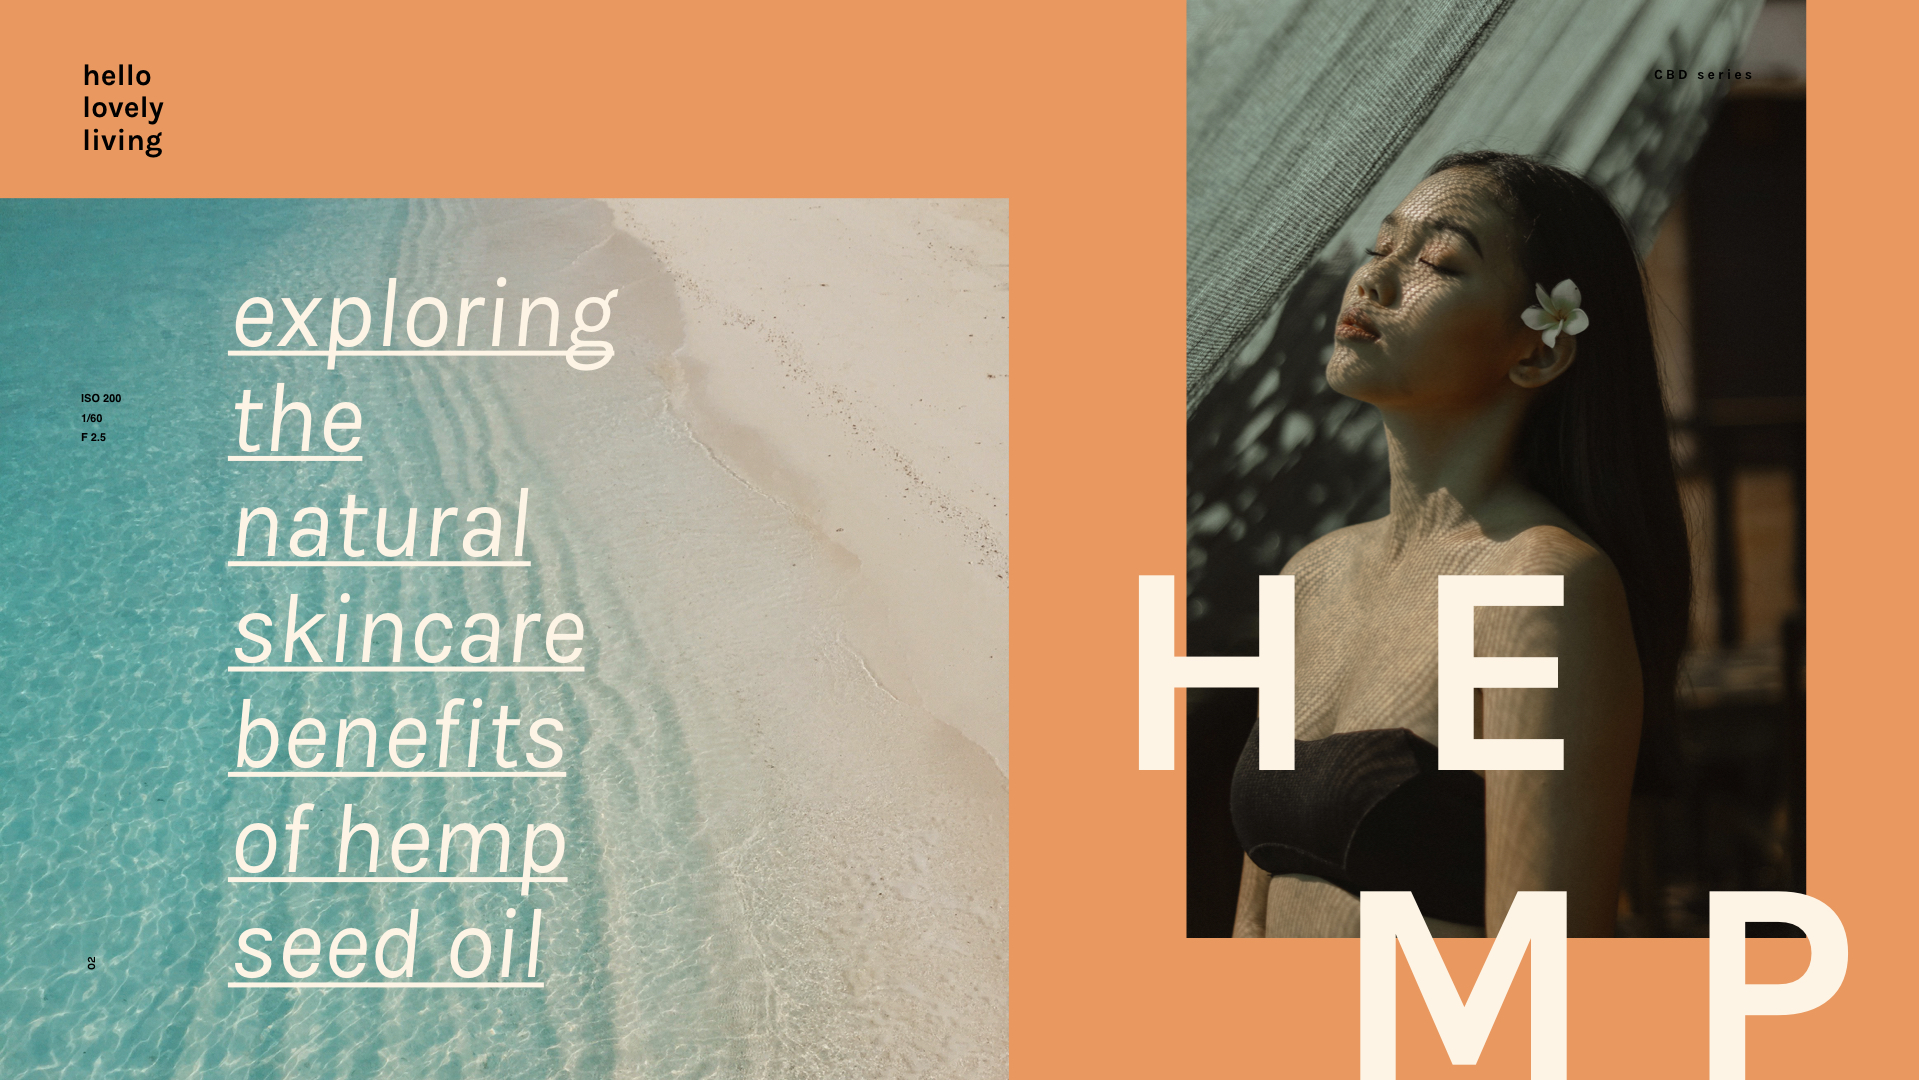 hellolovelyliving.com | CBD Series Part 2 | Exploring The Natural Skincare Benefits Of Hemp Seed Oil